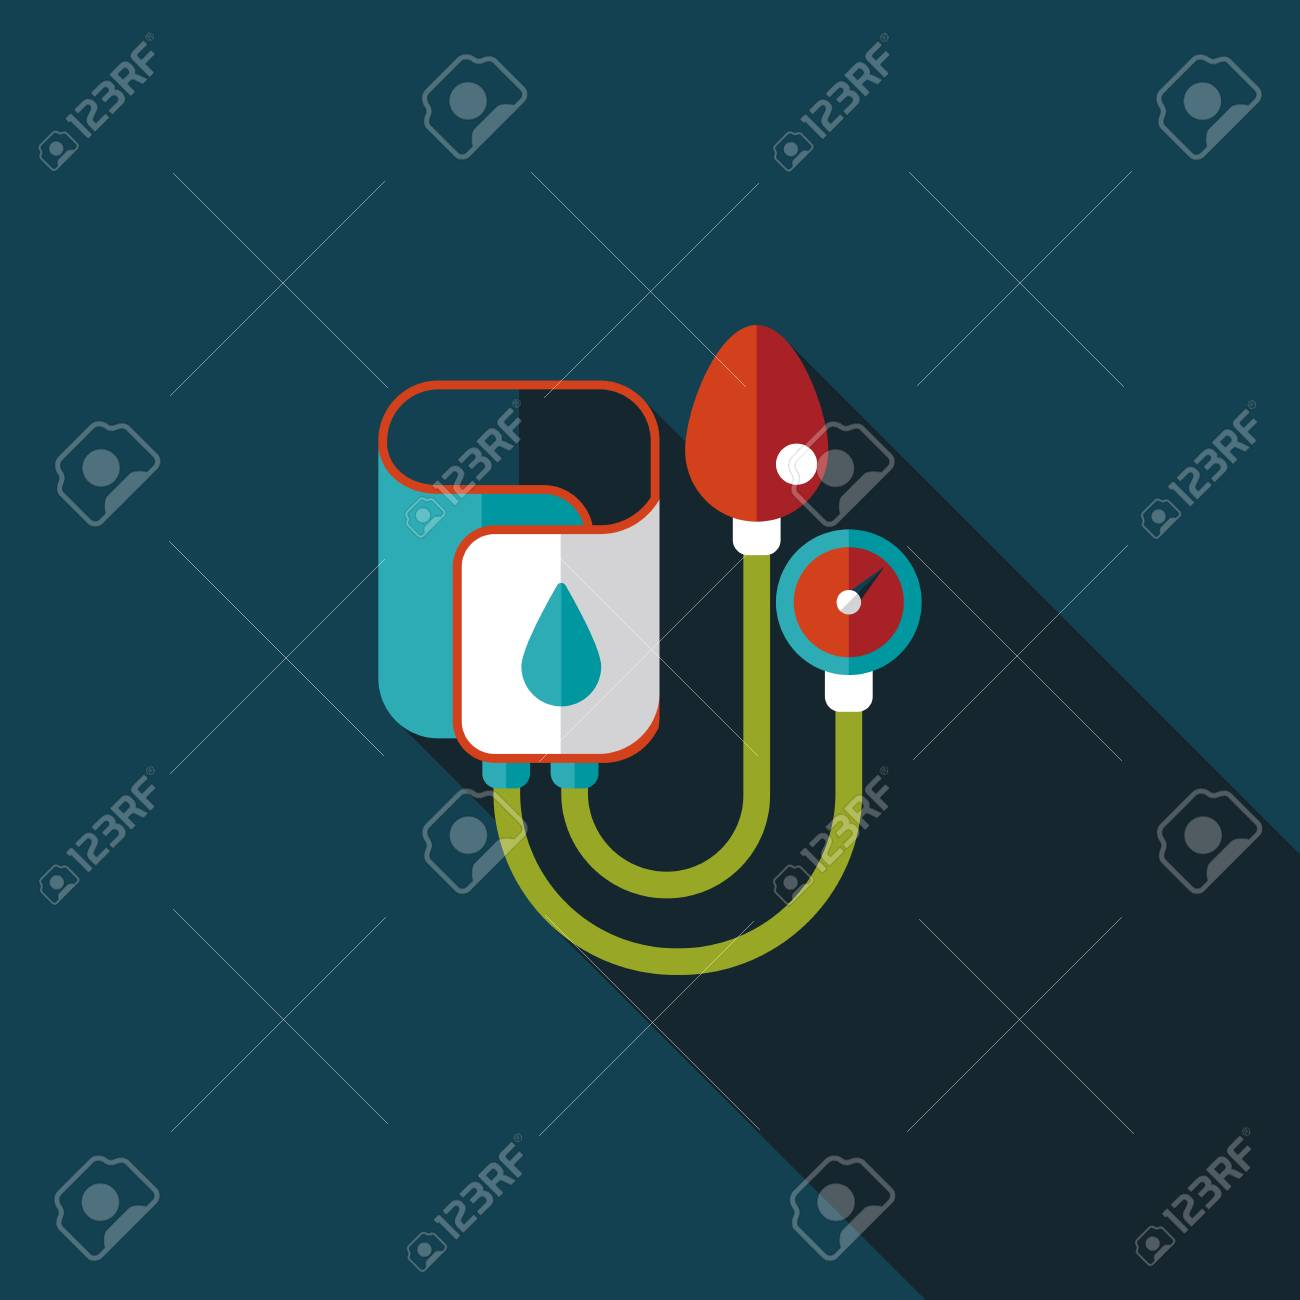 Sphygmomanometer flat icon with long shadow - 31016809